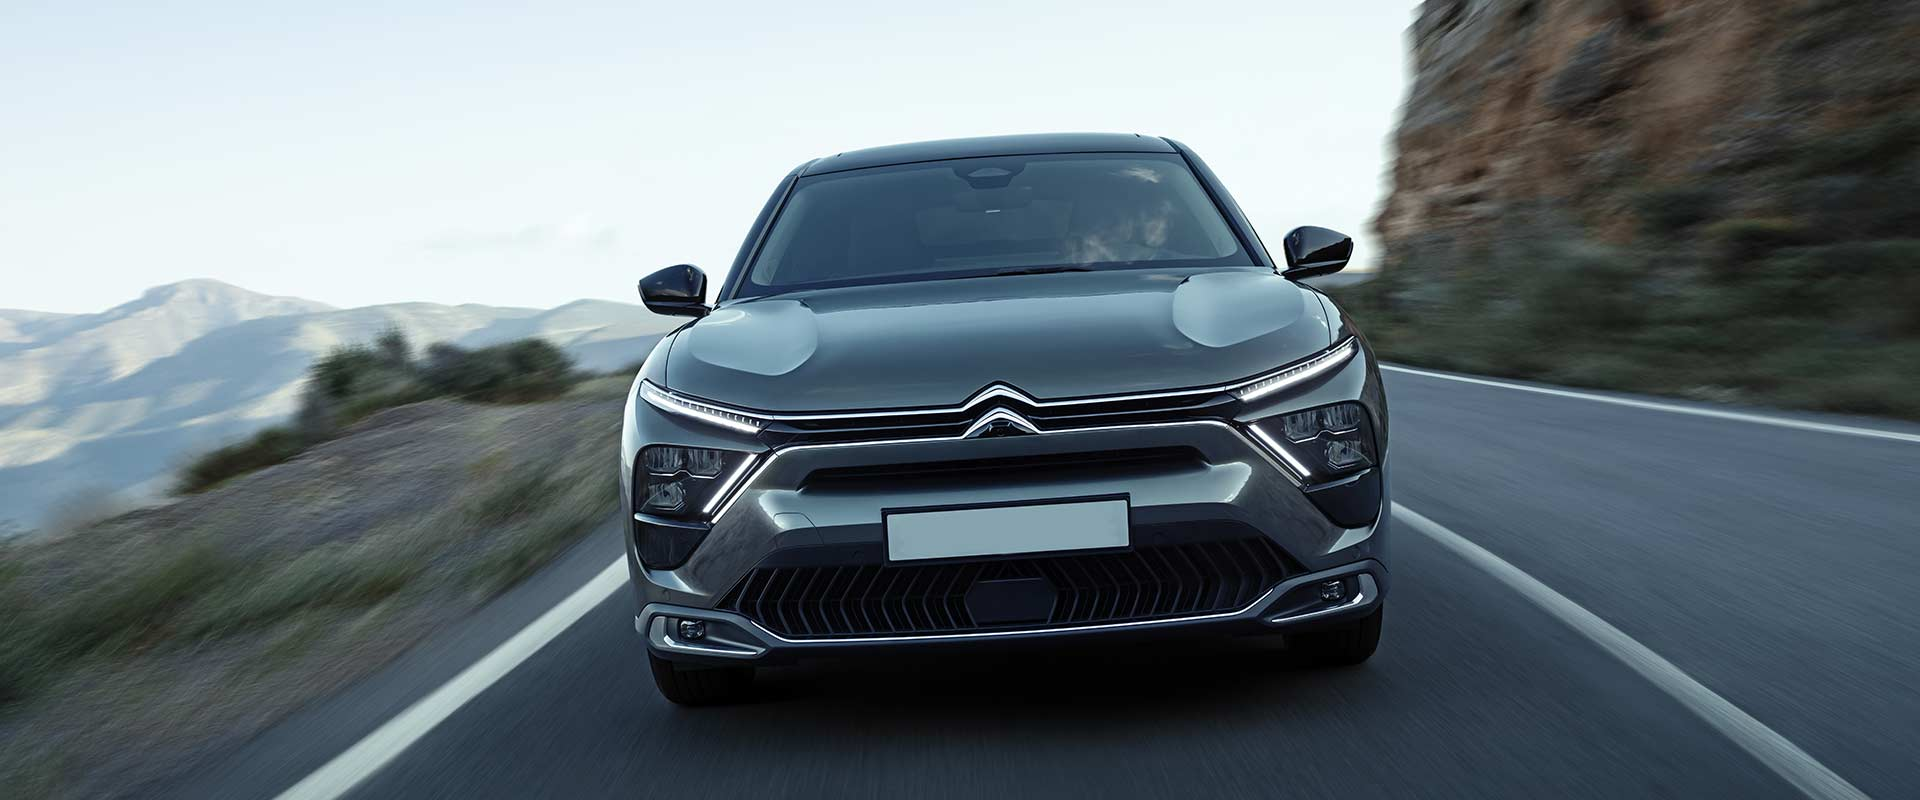 new-citroen-c5x-front-driving